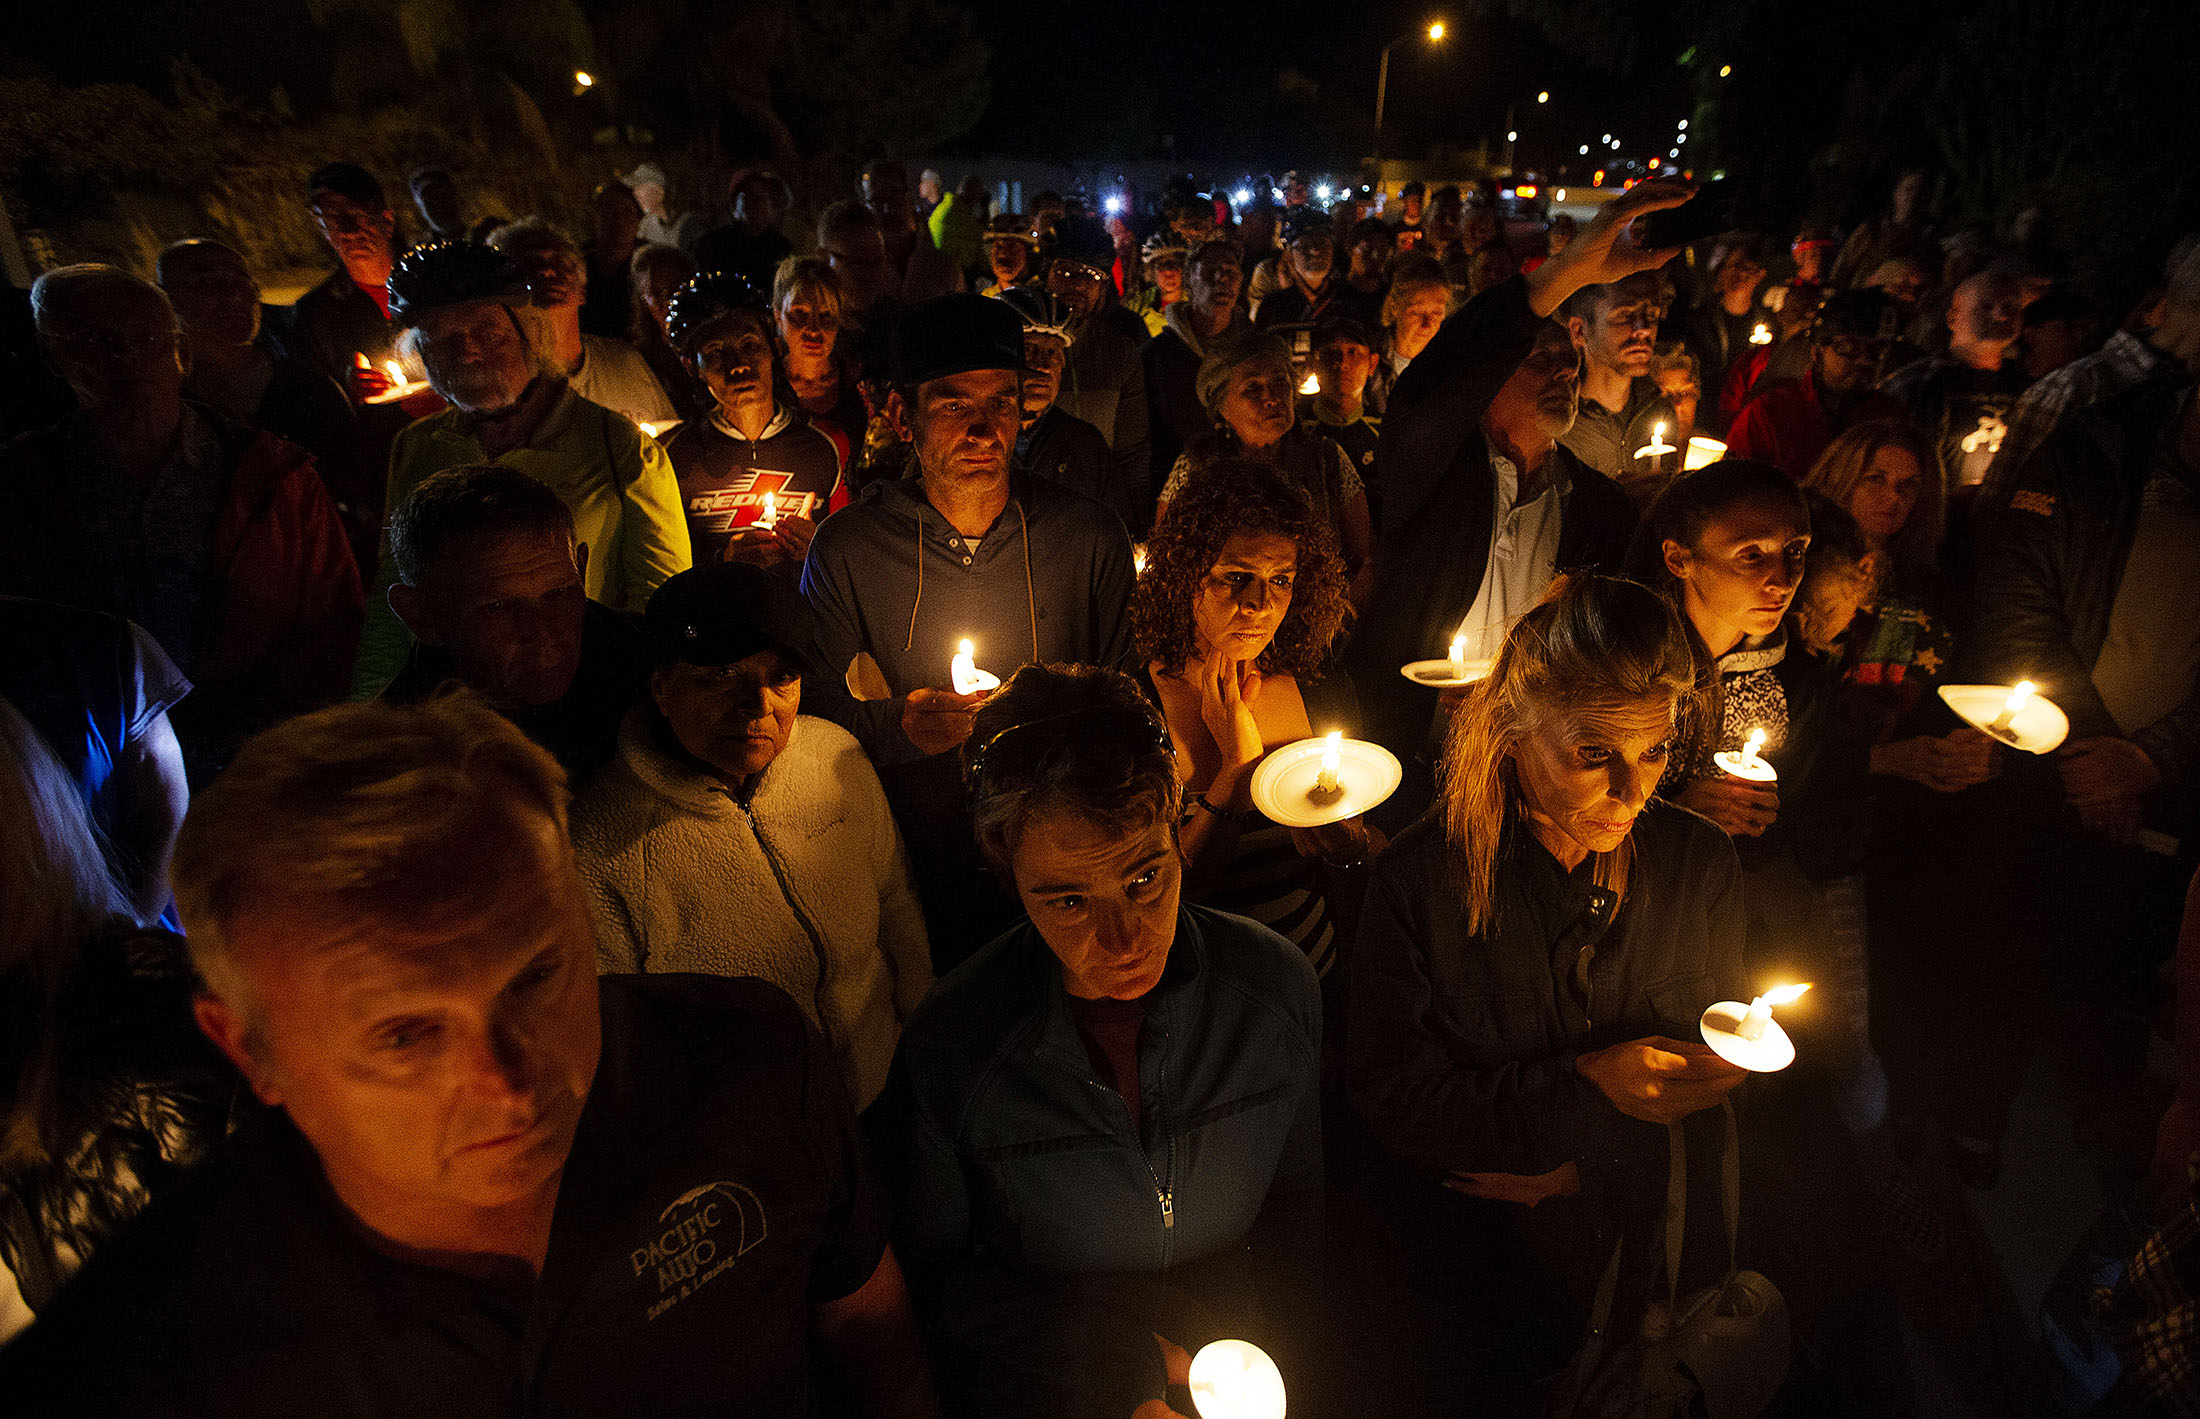 More than 100 people and fellow cyclist attend a candlelight vigil for Leslie Pray, 54, who was killed Saturday while riding her bike along Mills Avenue near Radcliffe Drive in Claremont on Monday, November 5, 2018.